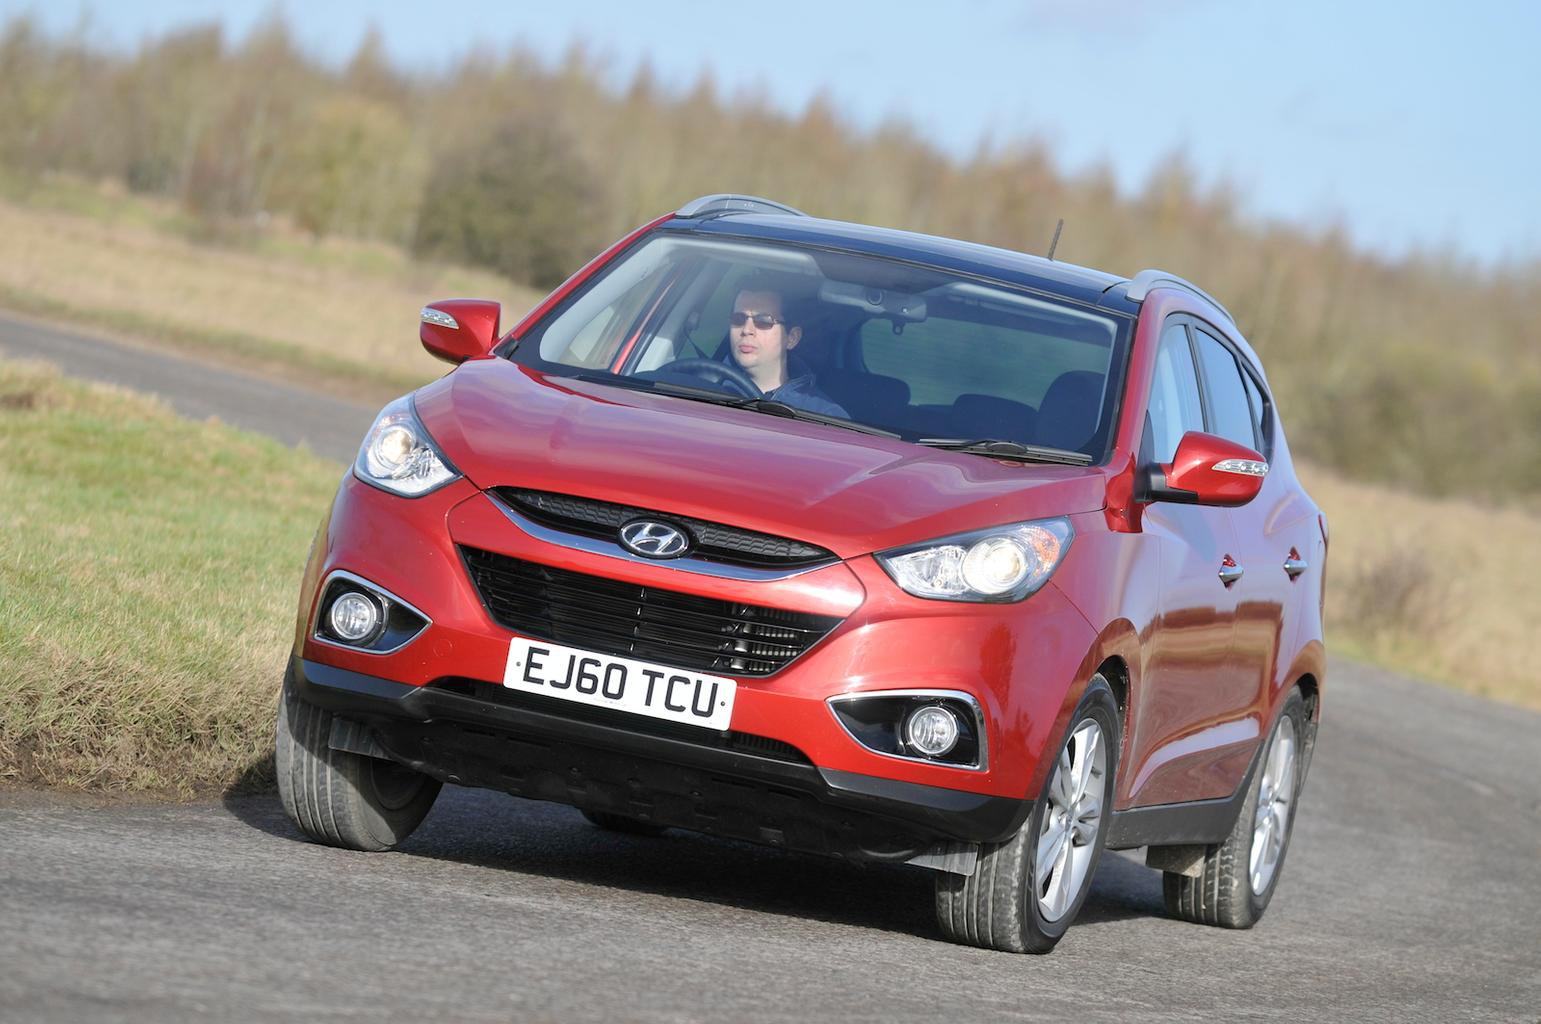 Used car of the week: Hyundai ix35